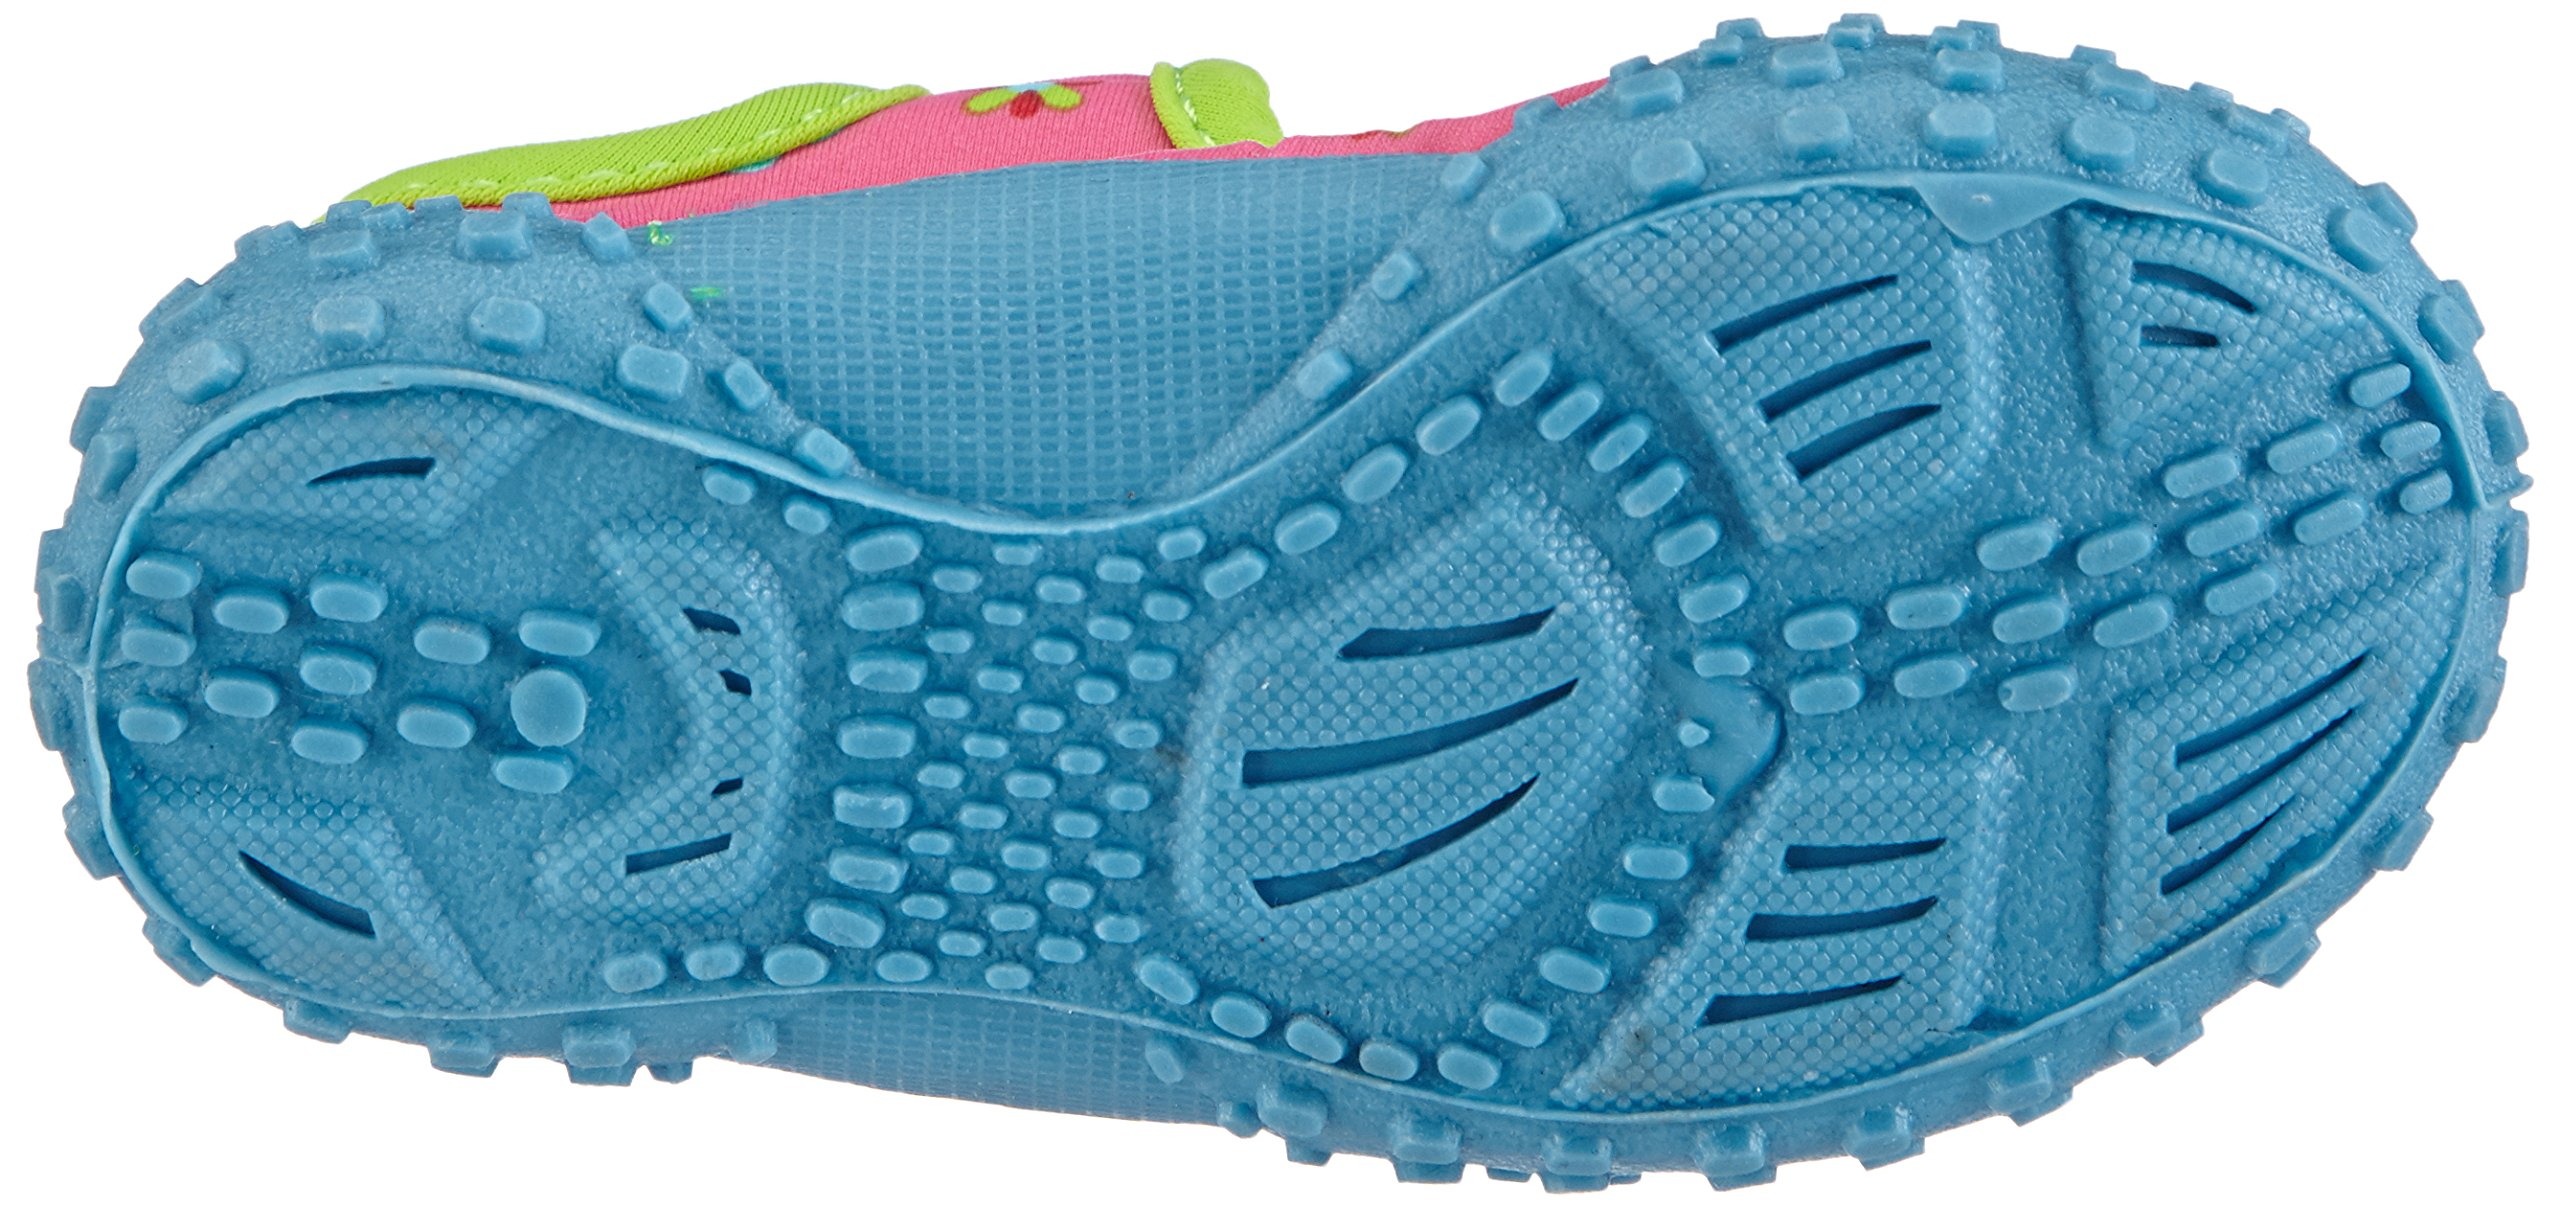 Playshoes Girl's UV Protection Flower Collection Aqua Swimming/Beach Shoes (4.5 M US Toddler) by Playshoes (Image #3)